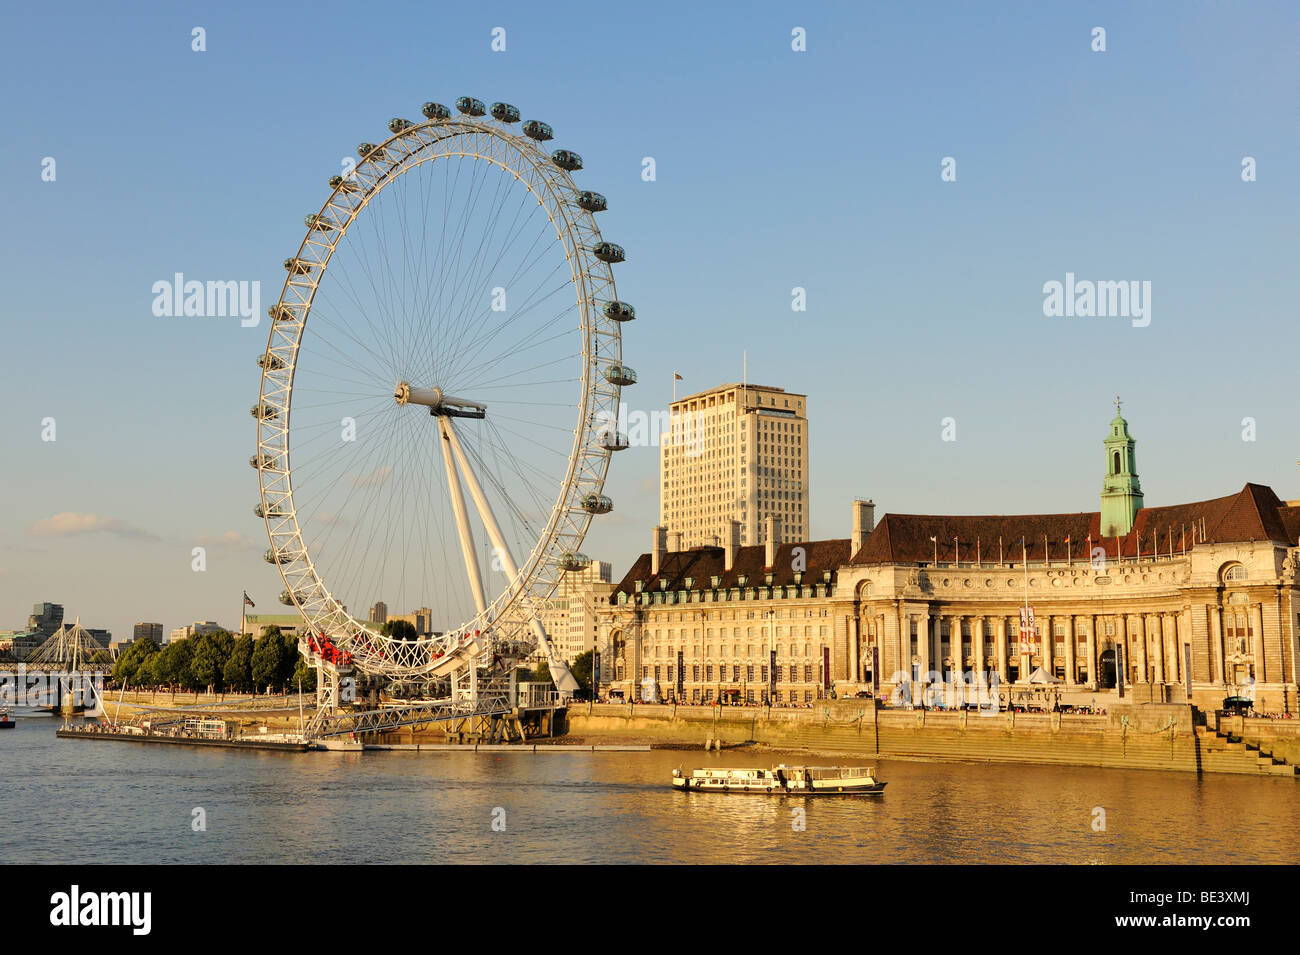 View over the River Thames to the 135 meter high London Eye or Millennium Wheel, London, England, United Kingdom, - Stock Image